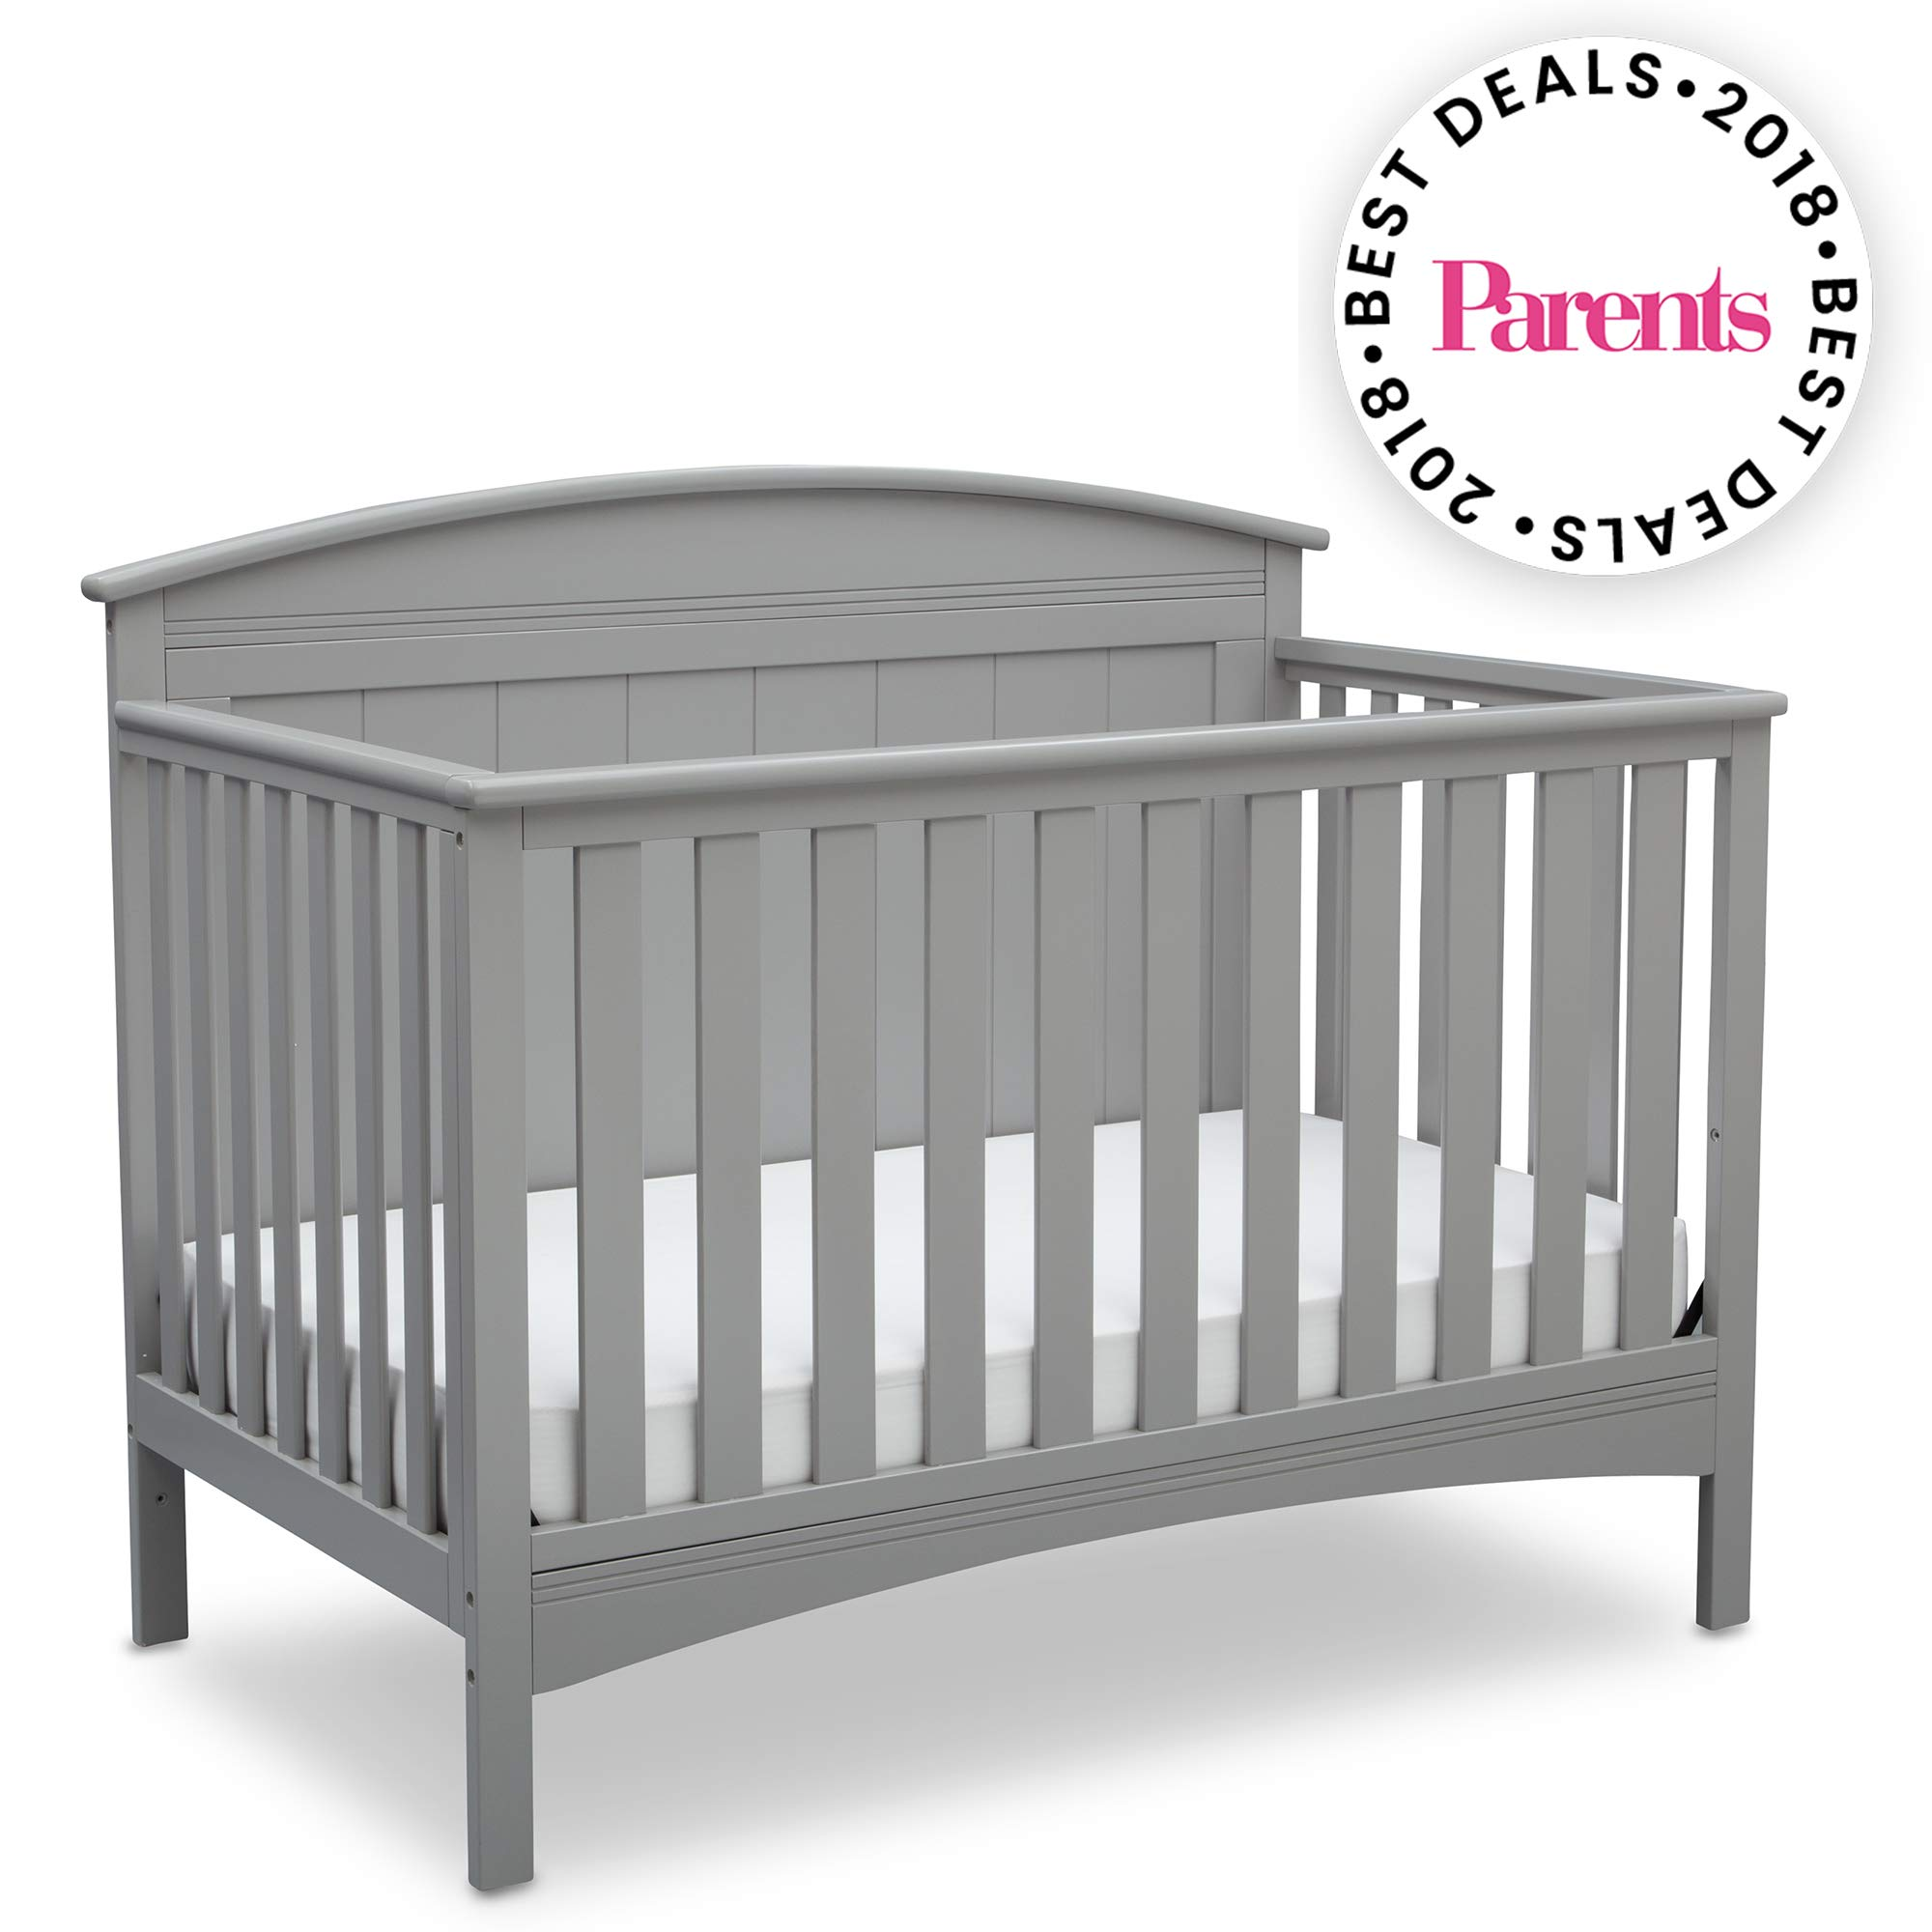 Delta Children Archer Solid Panel 4-in-1 Convertible Baby Crib, Grey by Delta Children